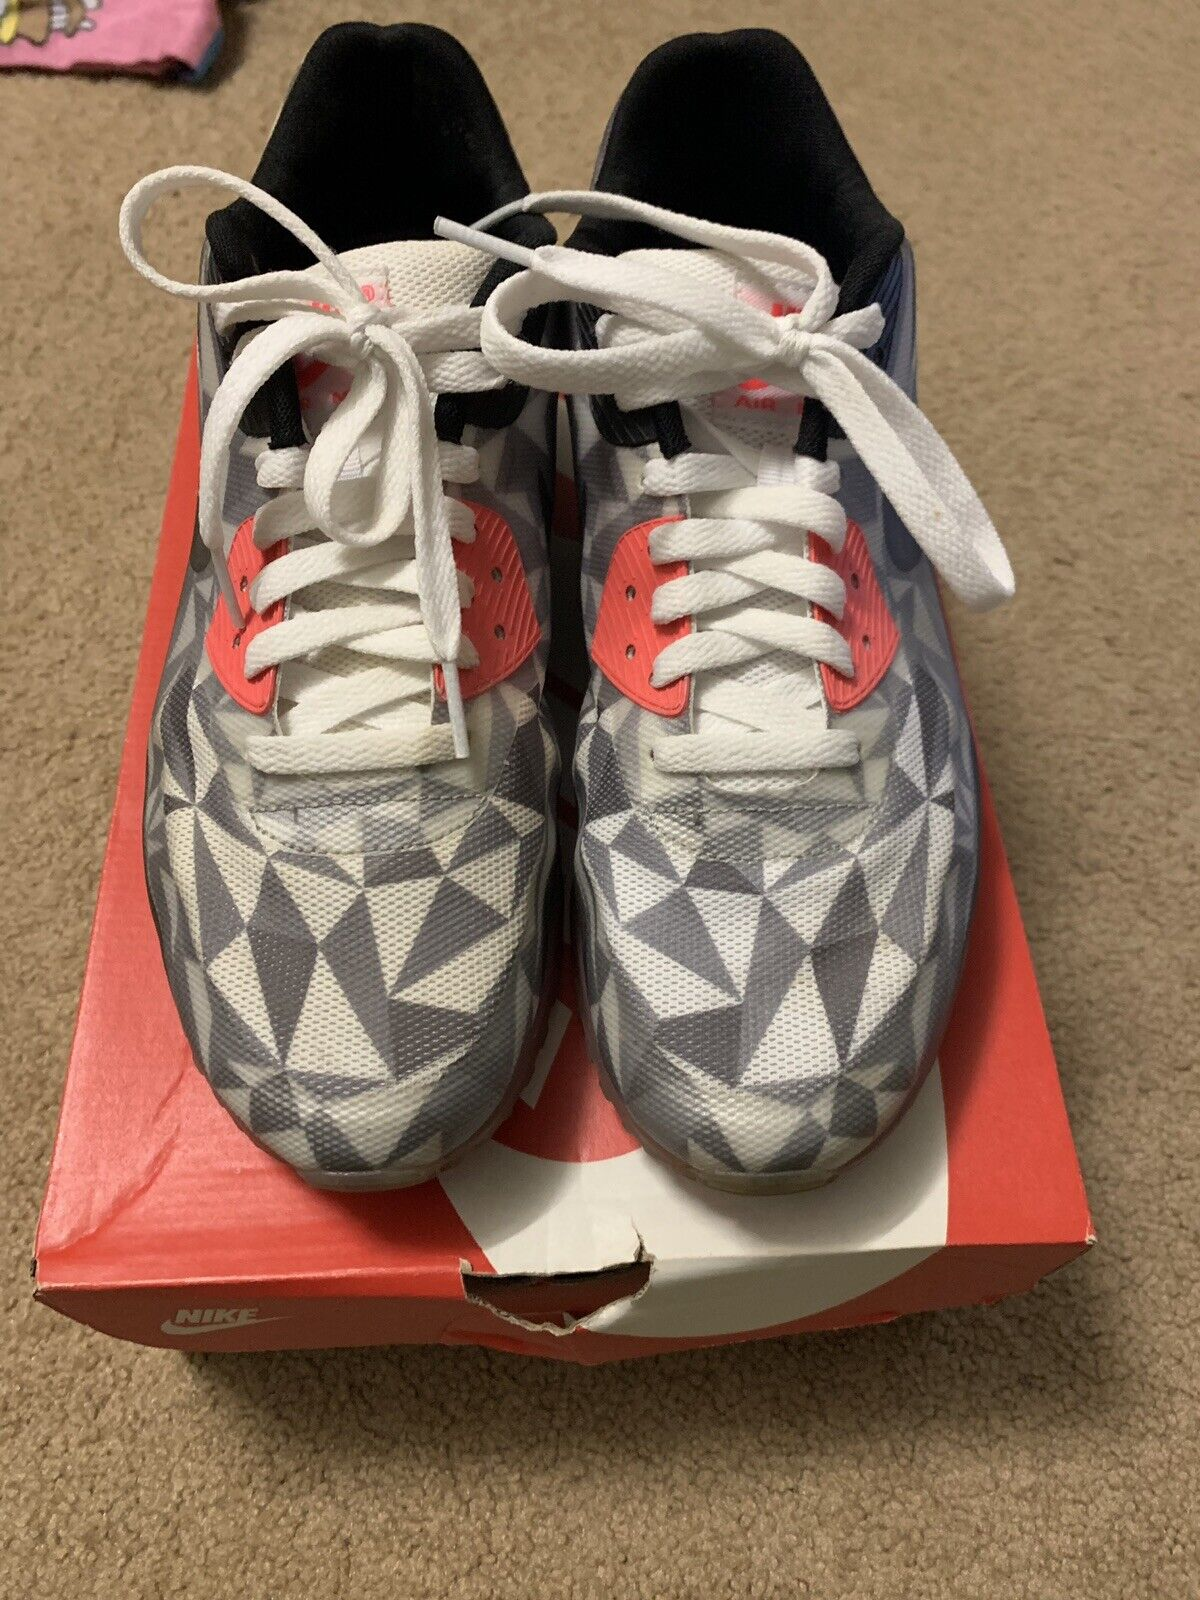 Obsidian 10.5 Size shoes Essential 95 Max Air Nike Mens